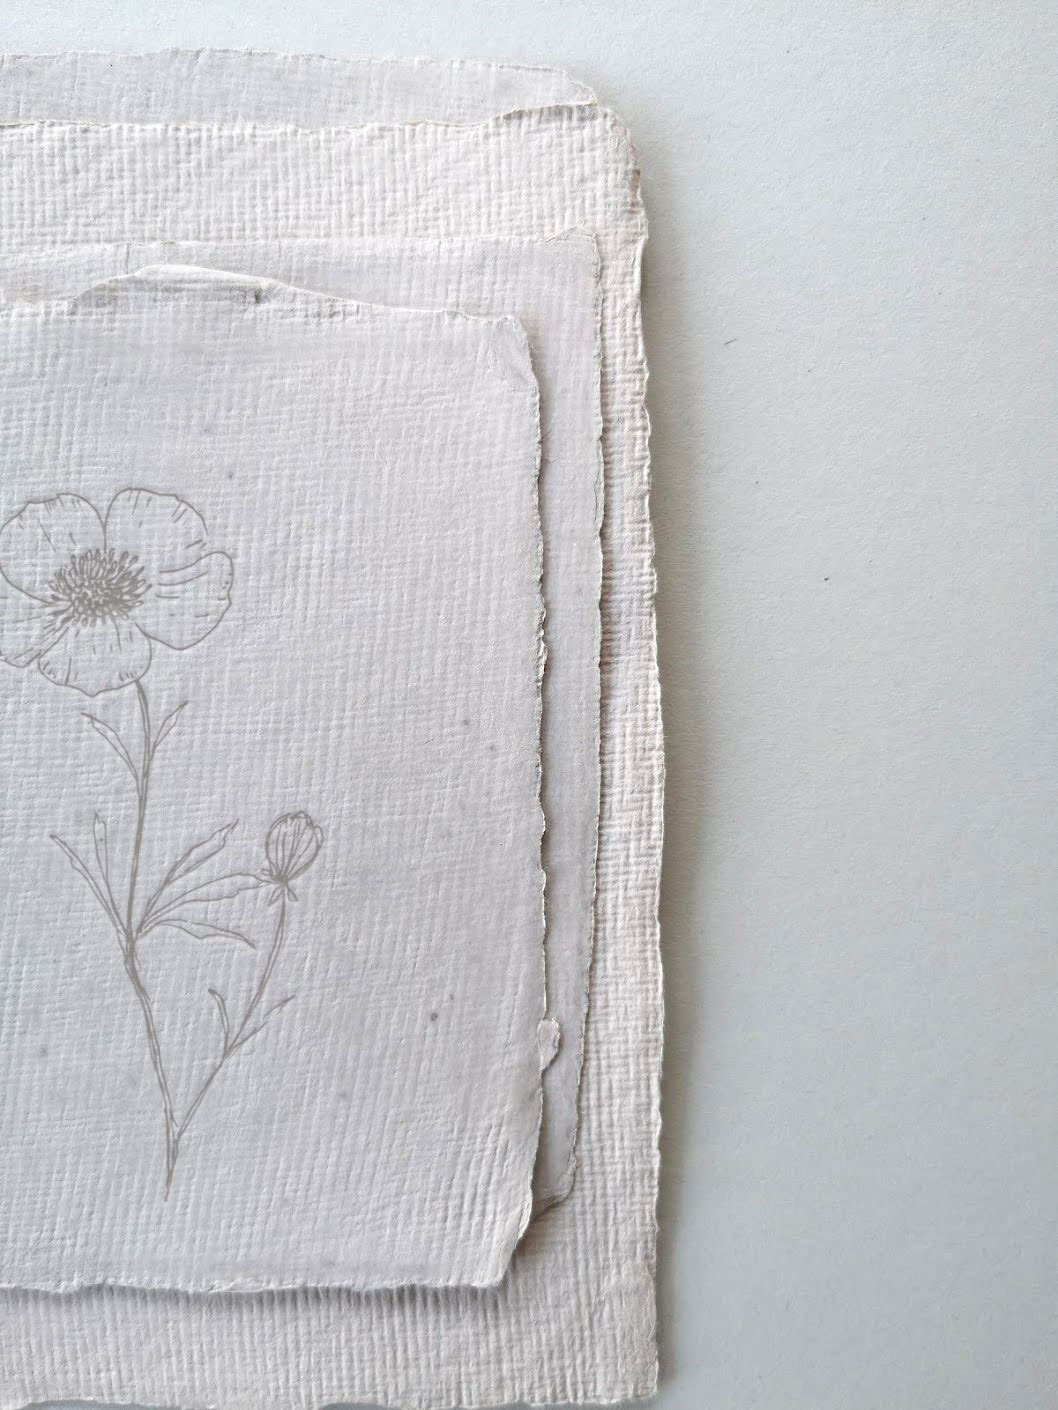 Buttercup_on_handmade_paper.jpg